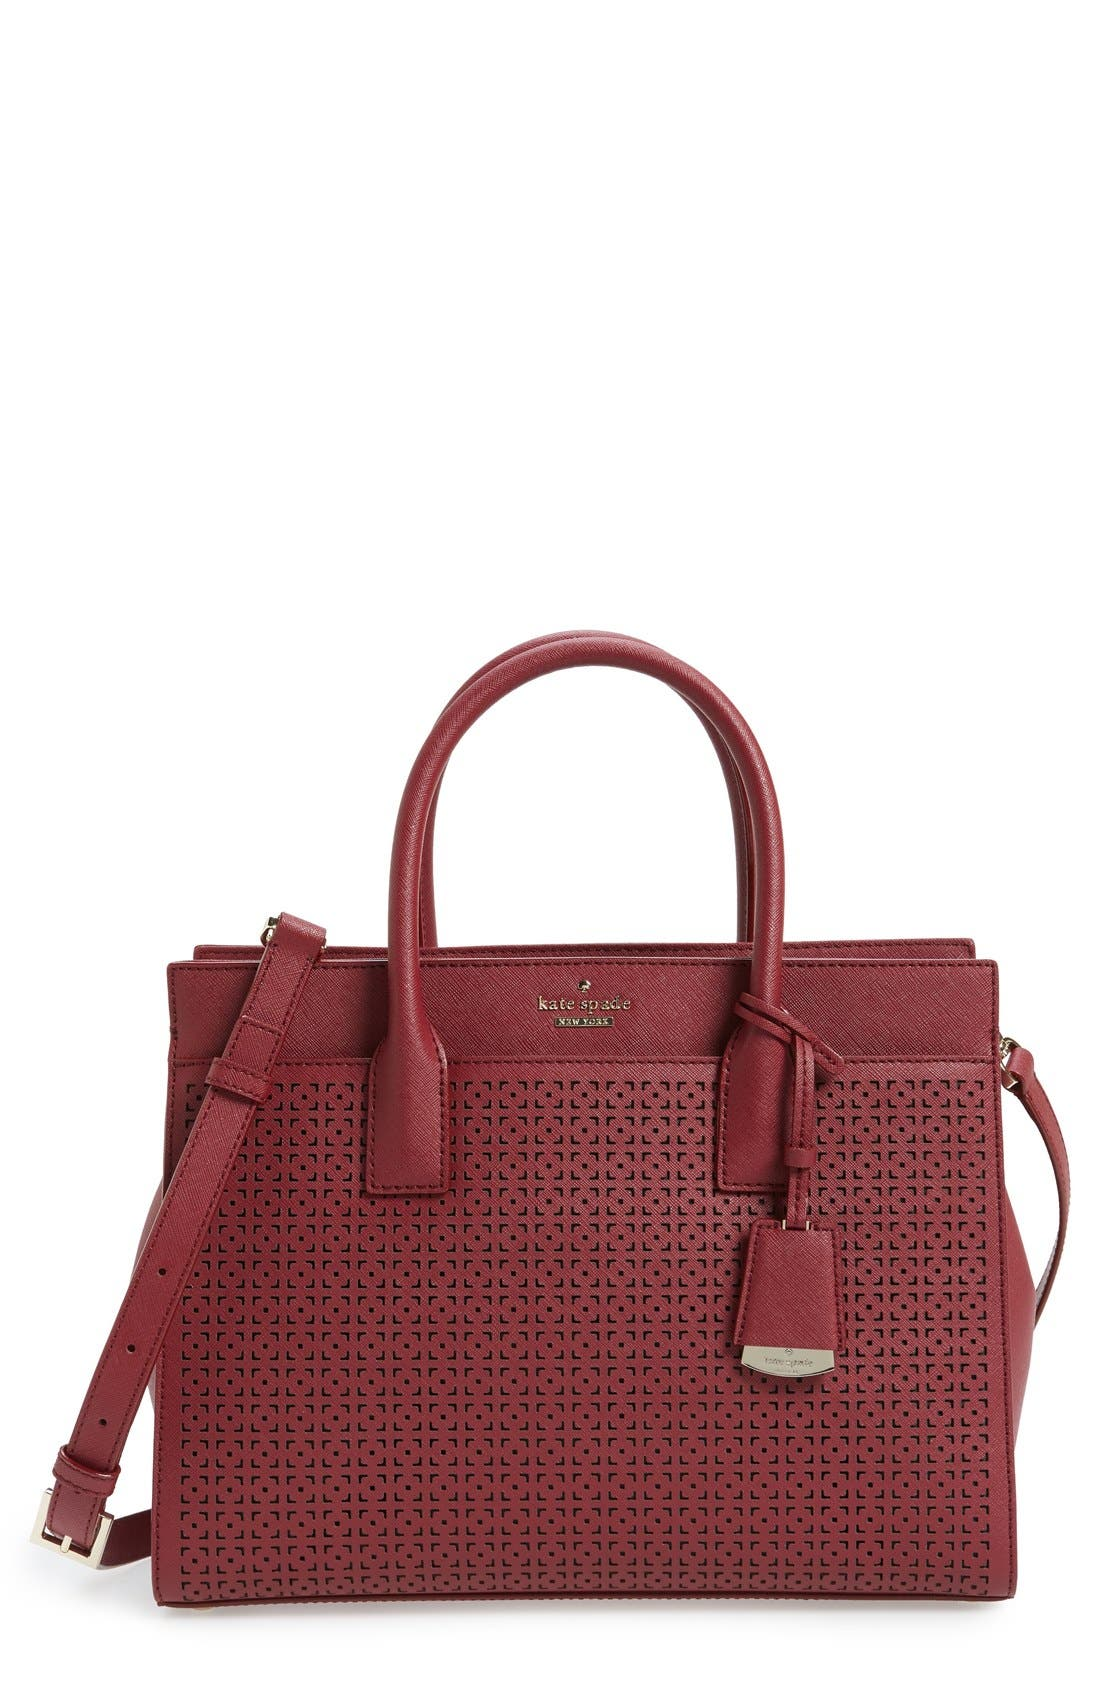 Main Image - kate spade new york 'cameron street - candace' perforated satchel